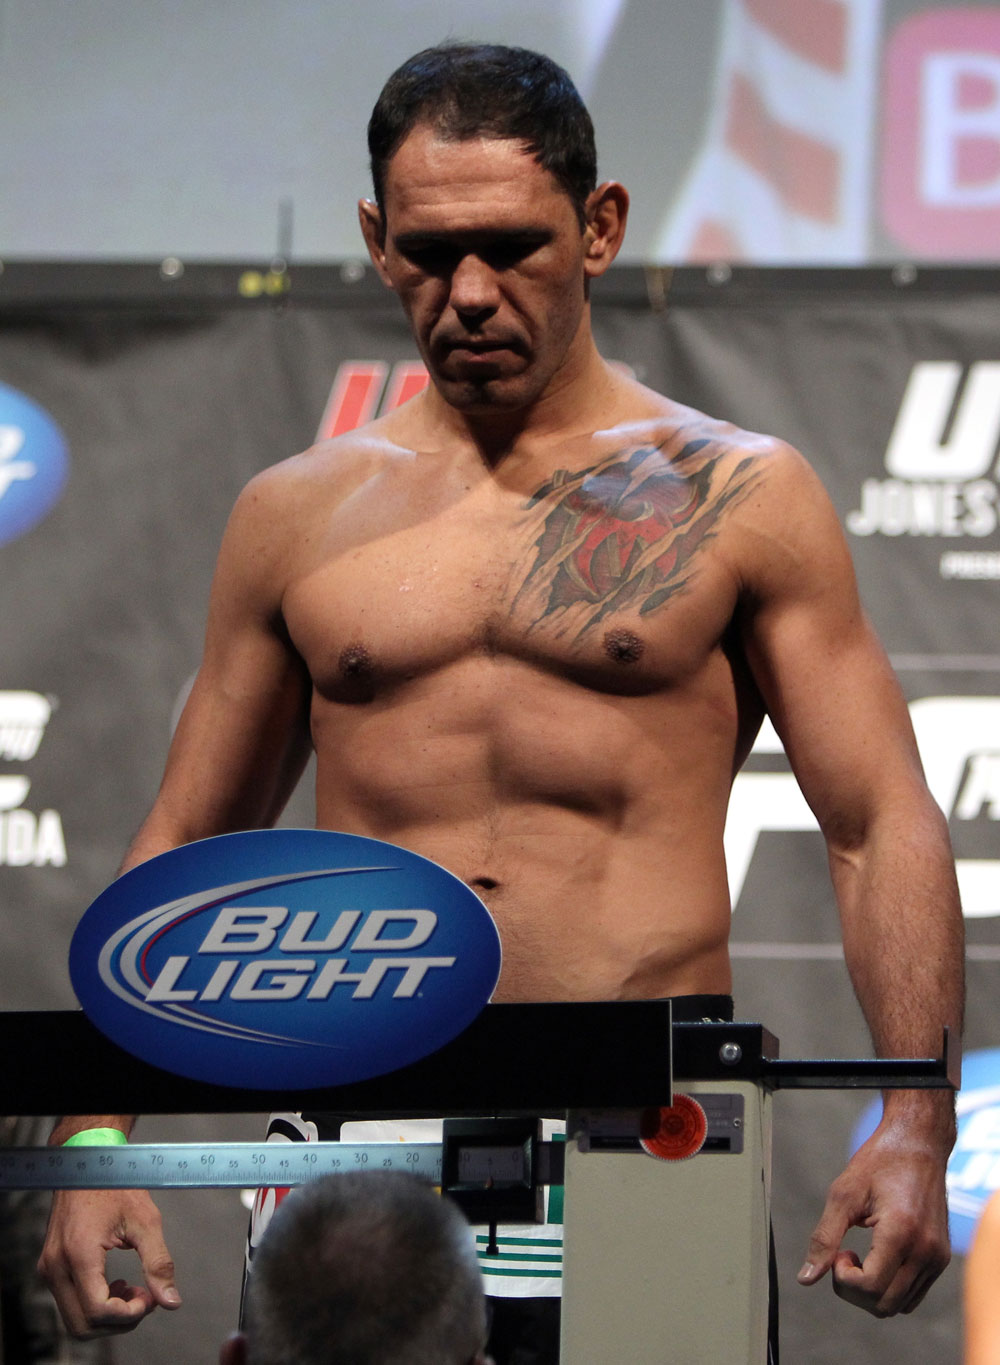 TORONTO, ON - DECEMBER 09:  Antonio Rogerio Nogueira weighs in during the UFC 140 Official Weigh-in at the Air Canada Centre on December 9, 2011 in Toronto, Canada.  (Photo by Josh Hedges/Zuffa LLC/Zuffa LLC via Getty Images)